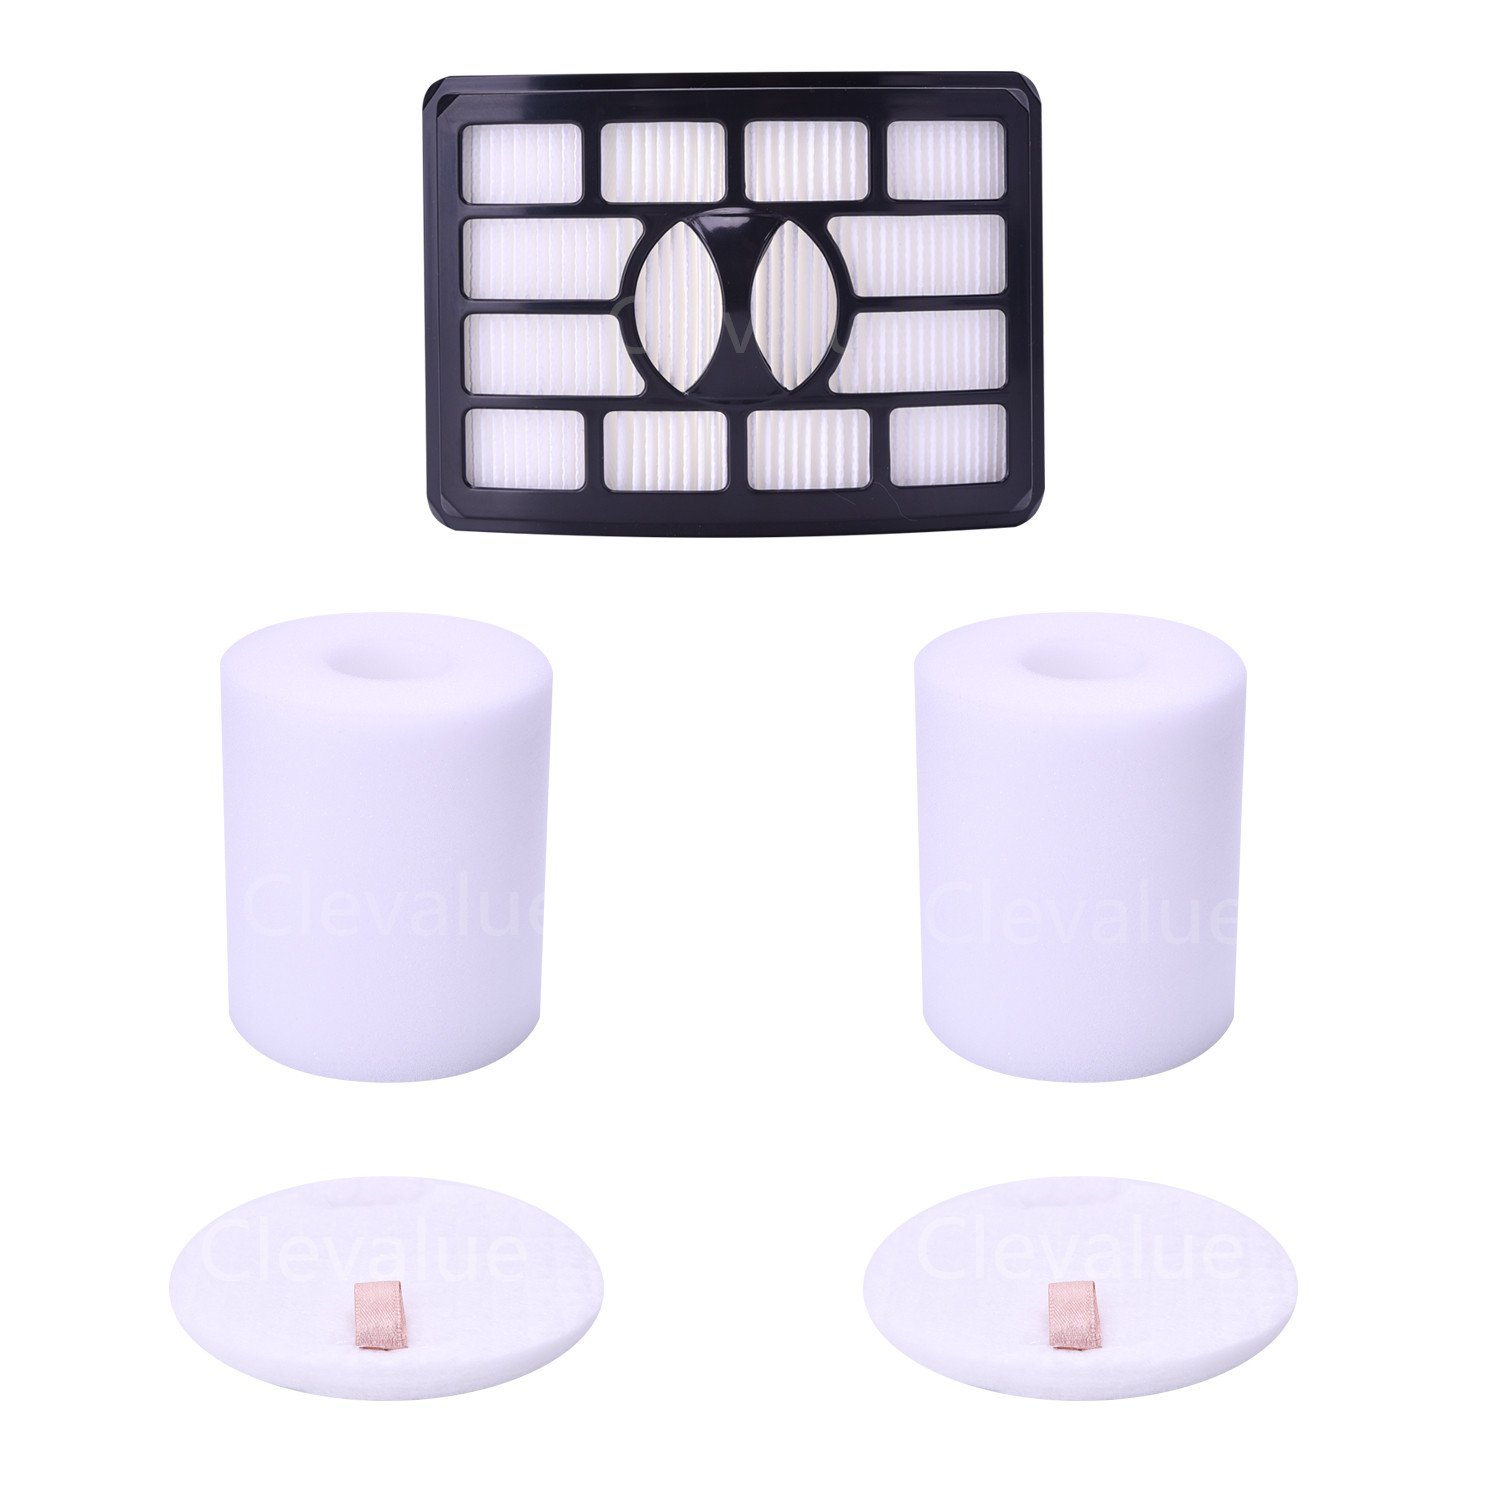 Replacement Filters for Shark Rotator Pro Lift-away NV500, NV501, NV502, NV503, NV505, NV510, NV520, NV552, UV560, Xff500 Xhf500 (Not Fit NV650,NV680,NV755 Series) (2 Foam Filter and 1 Hepa Filter)